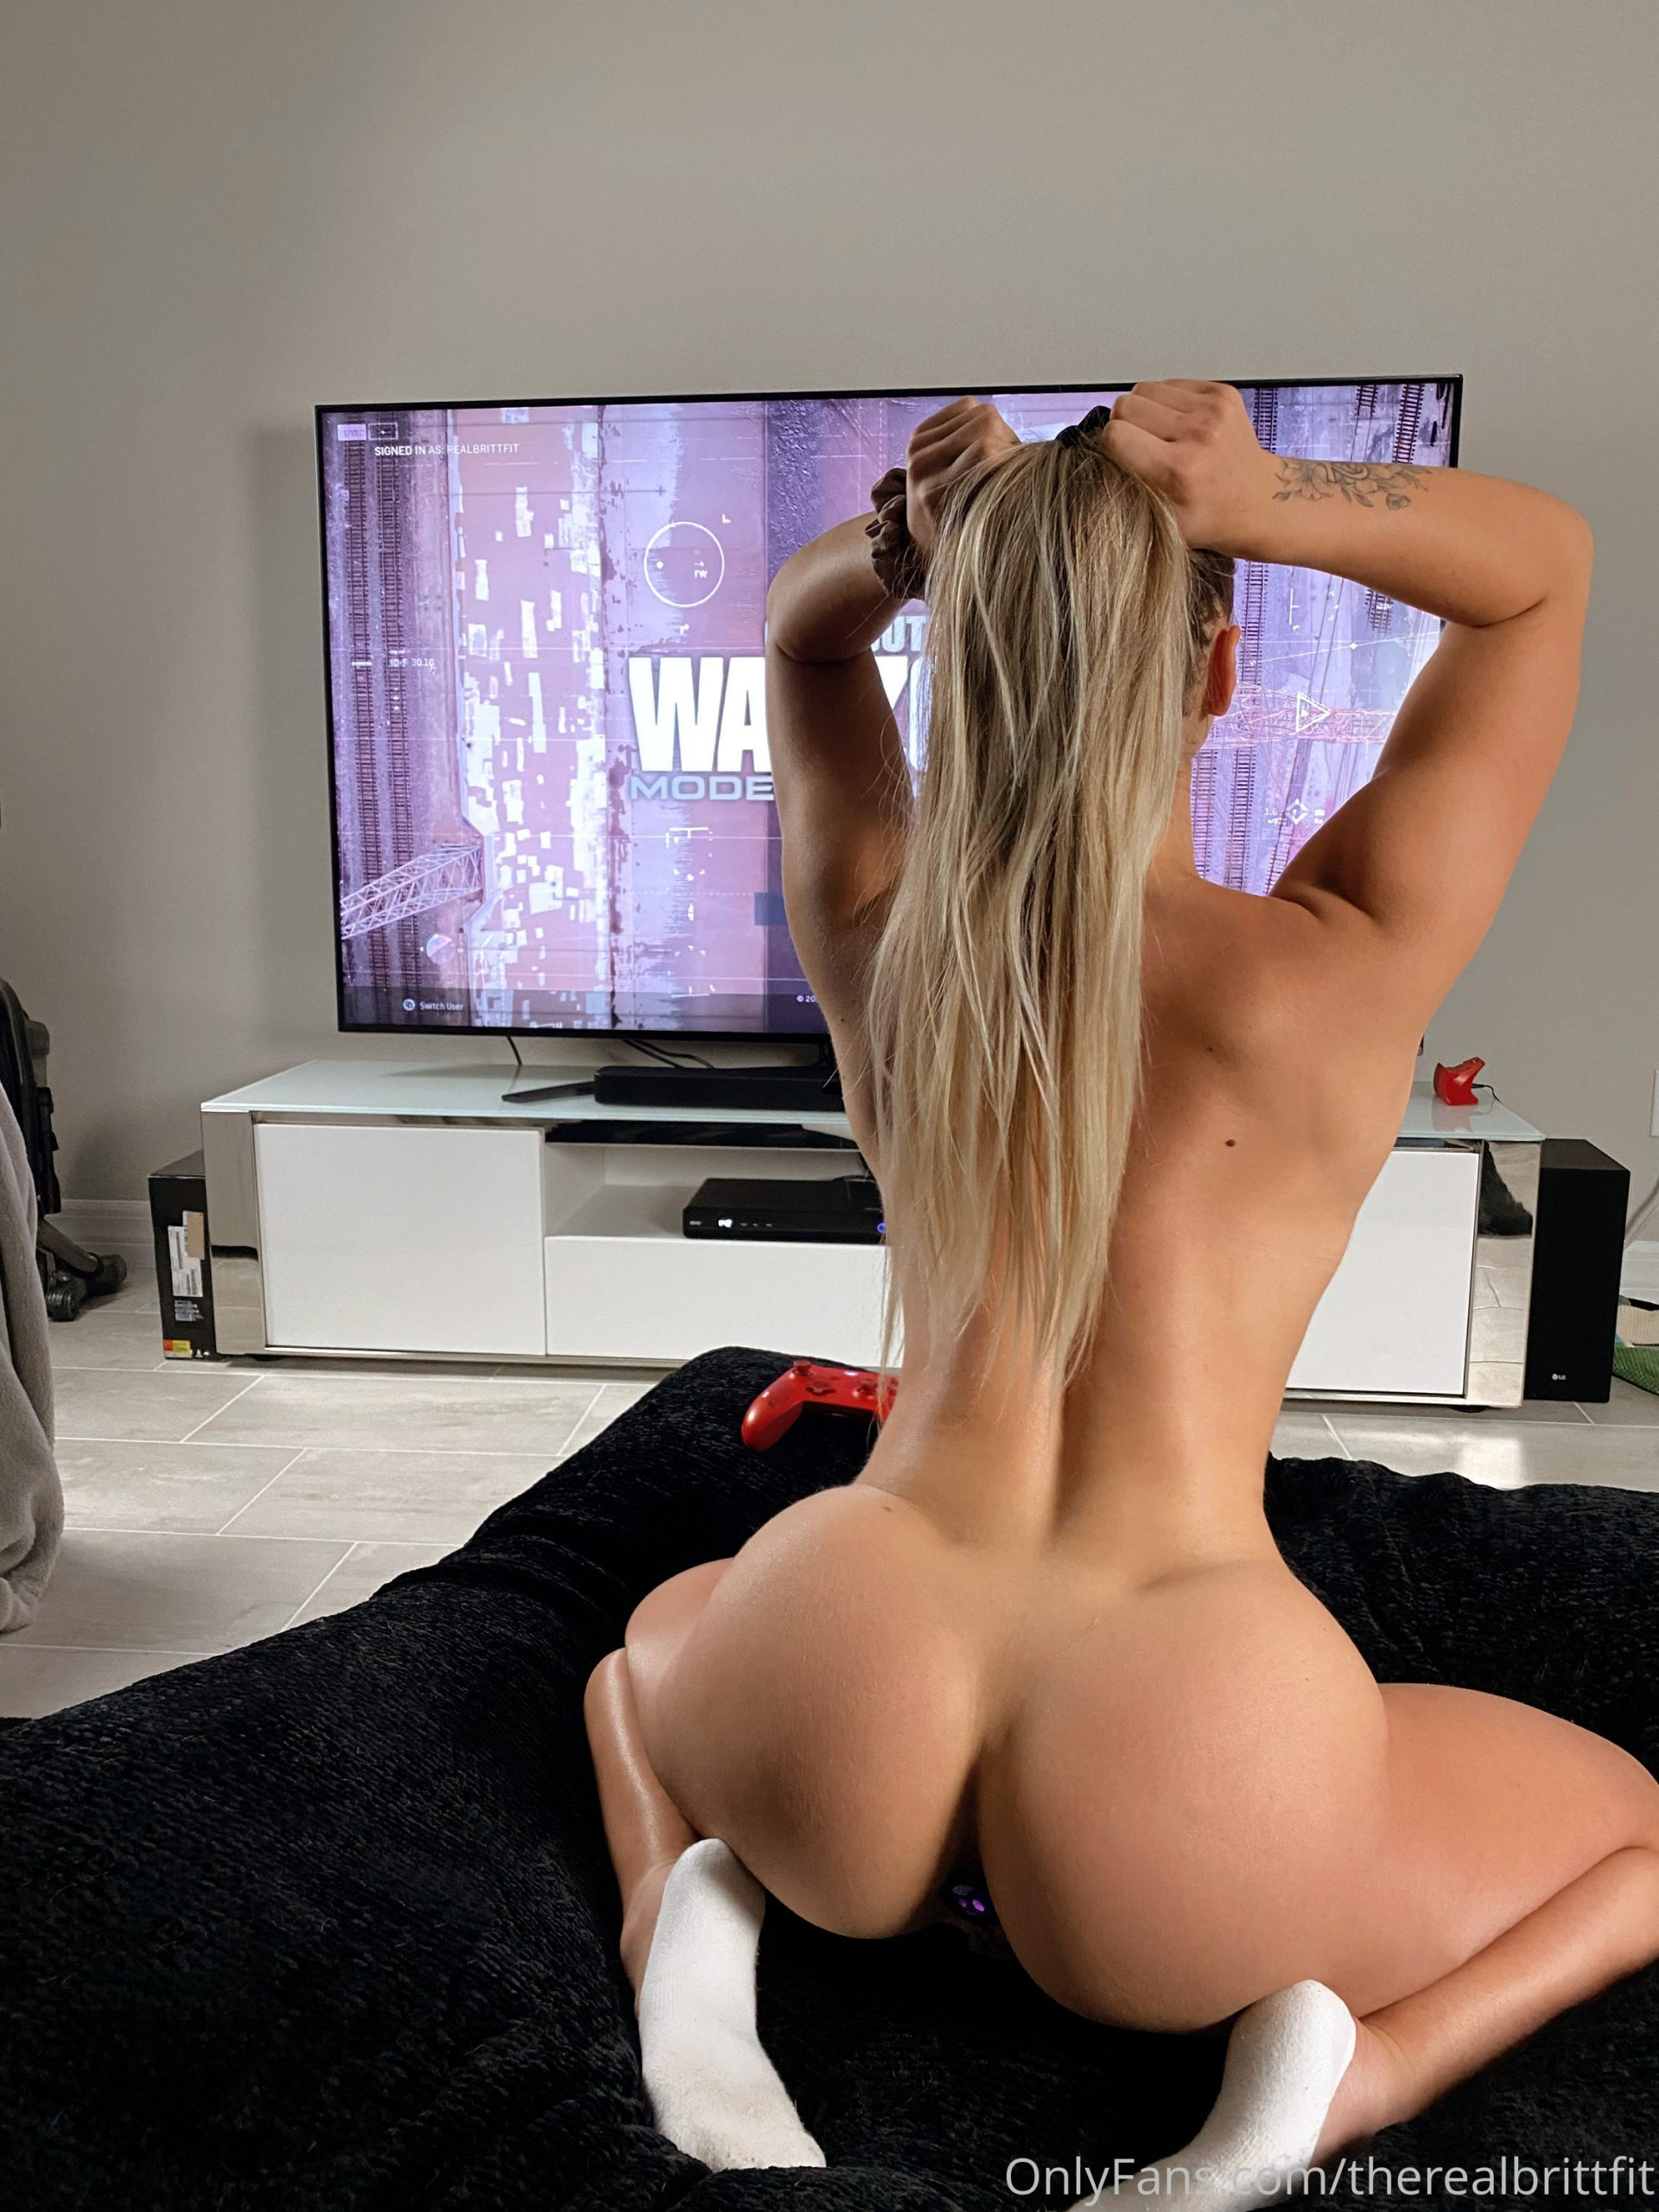 Onlyfans, Therealbrittfit, Nudes Leaked 0004